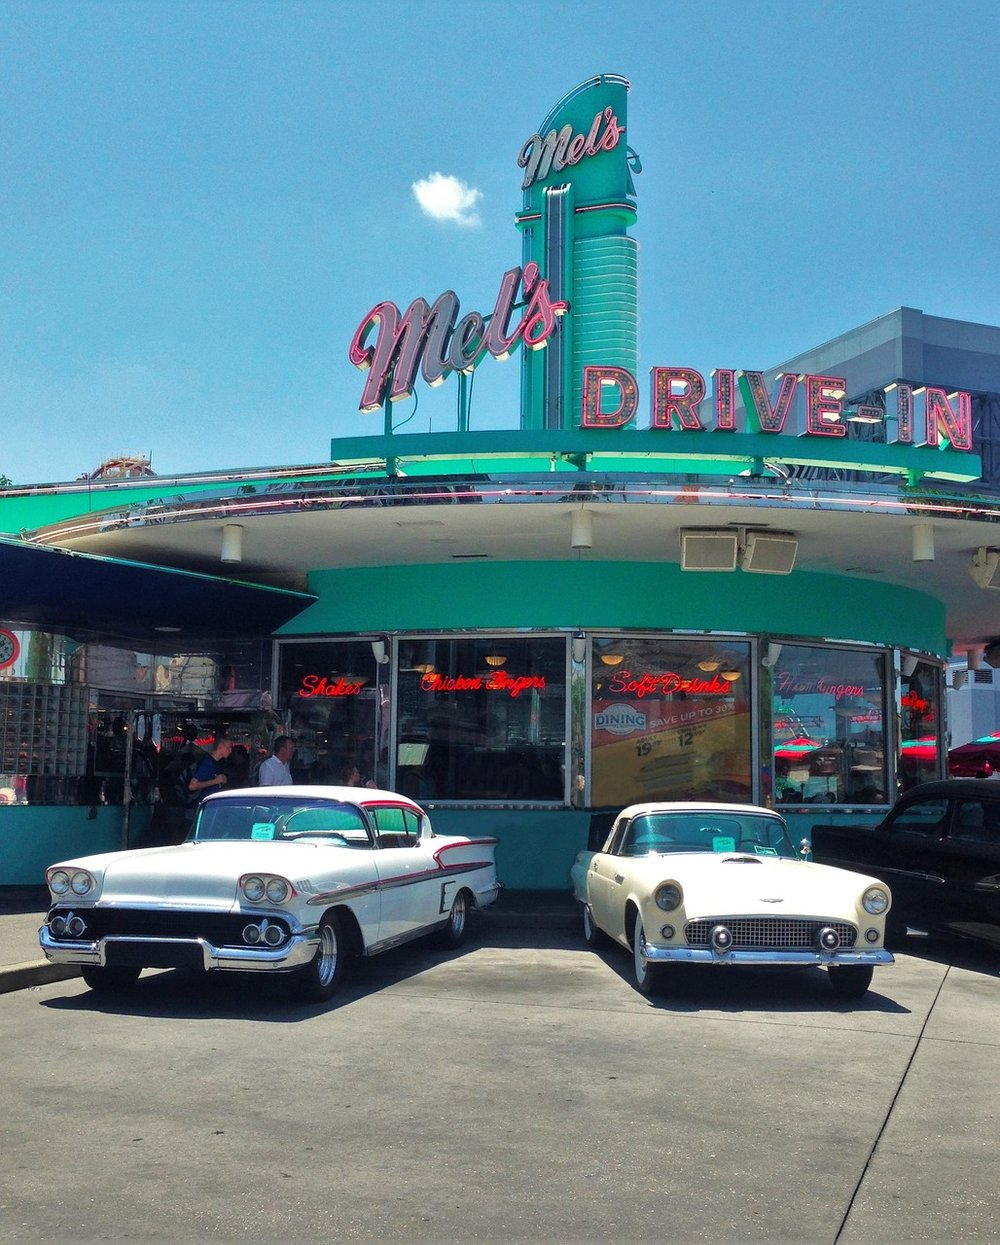 Historic Mel's drive-in is featured in the Classic movie  American Graffiti.